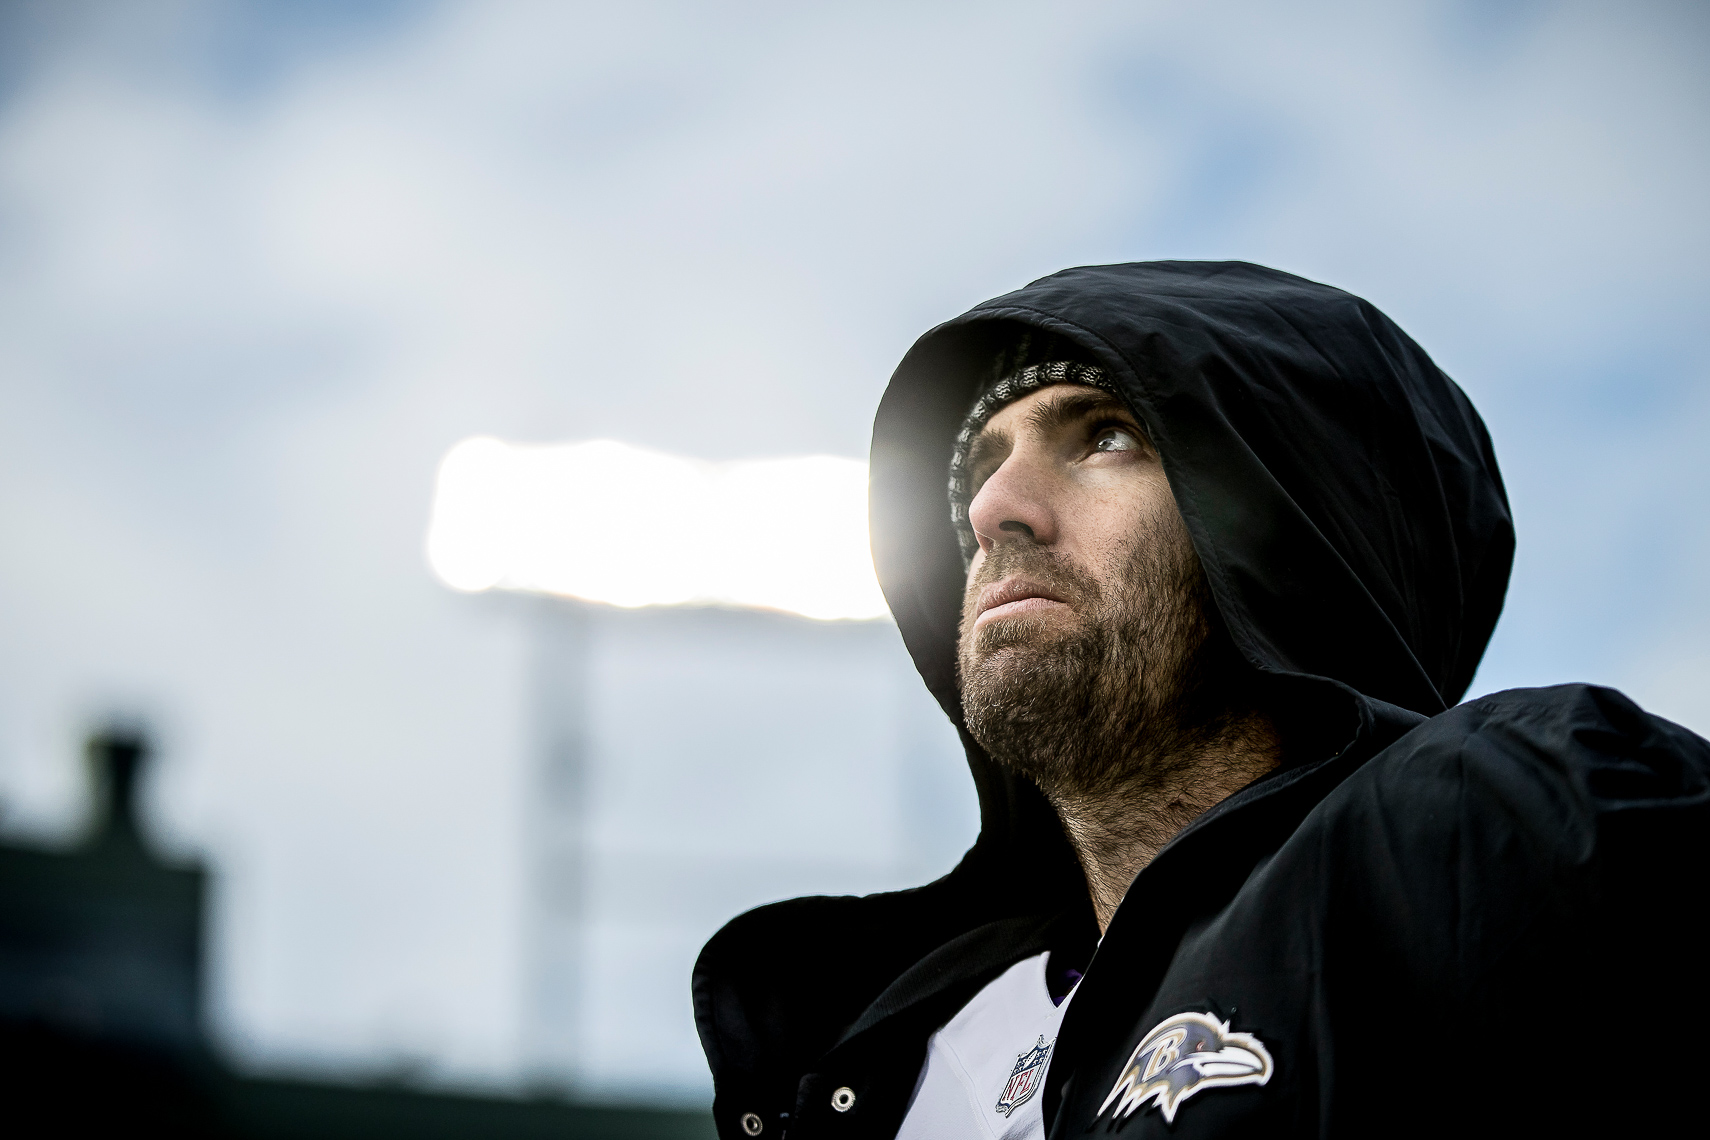 ravens10  NFL Baltimore Ravens photos NFL behind the scenes documentary sports photographer photo of quarterback Joe Flacco Super Bowl MVP